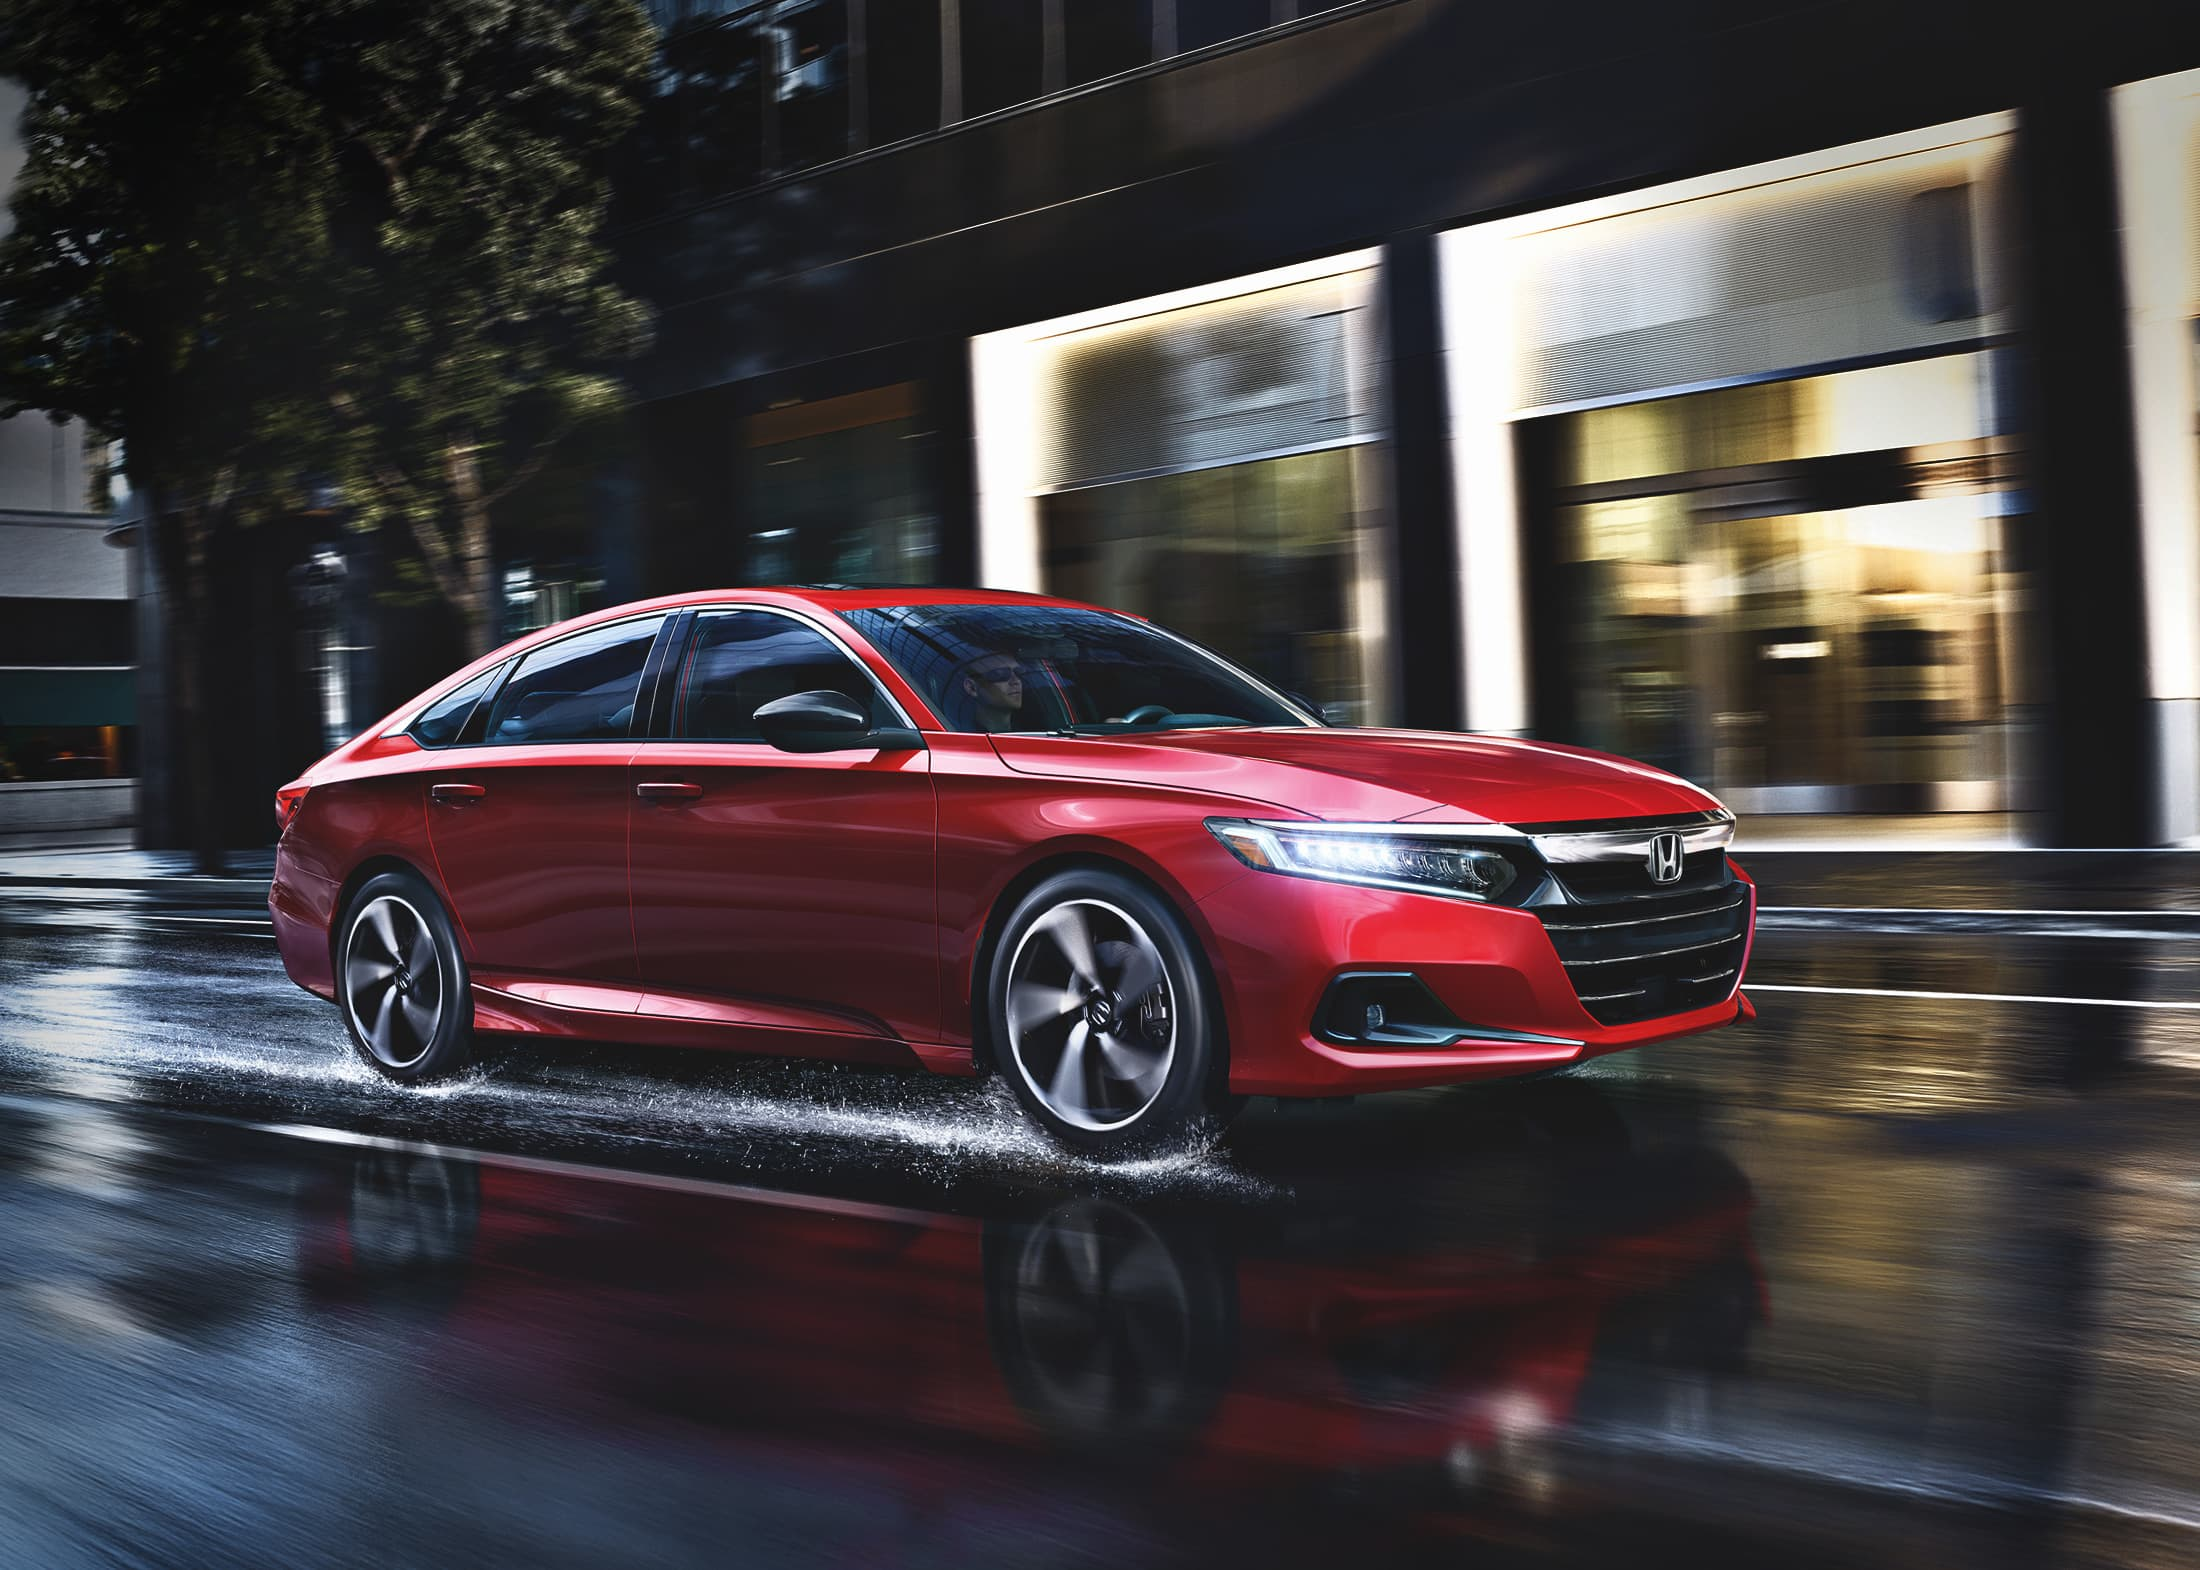 From wild and crazy accessories that stand out in a crowded car show. 2021 Honda Accord vs. 2020 Toyota Camry | Honda